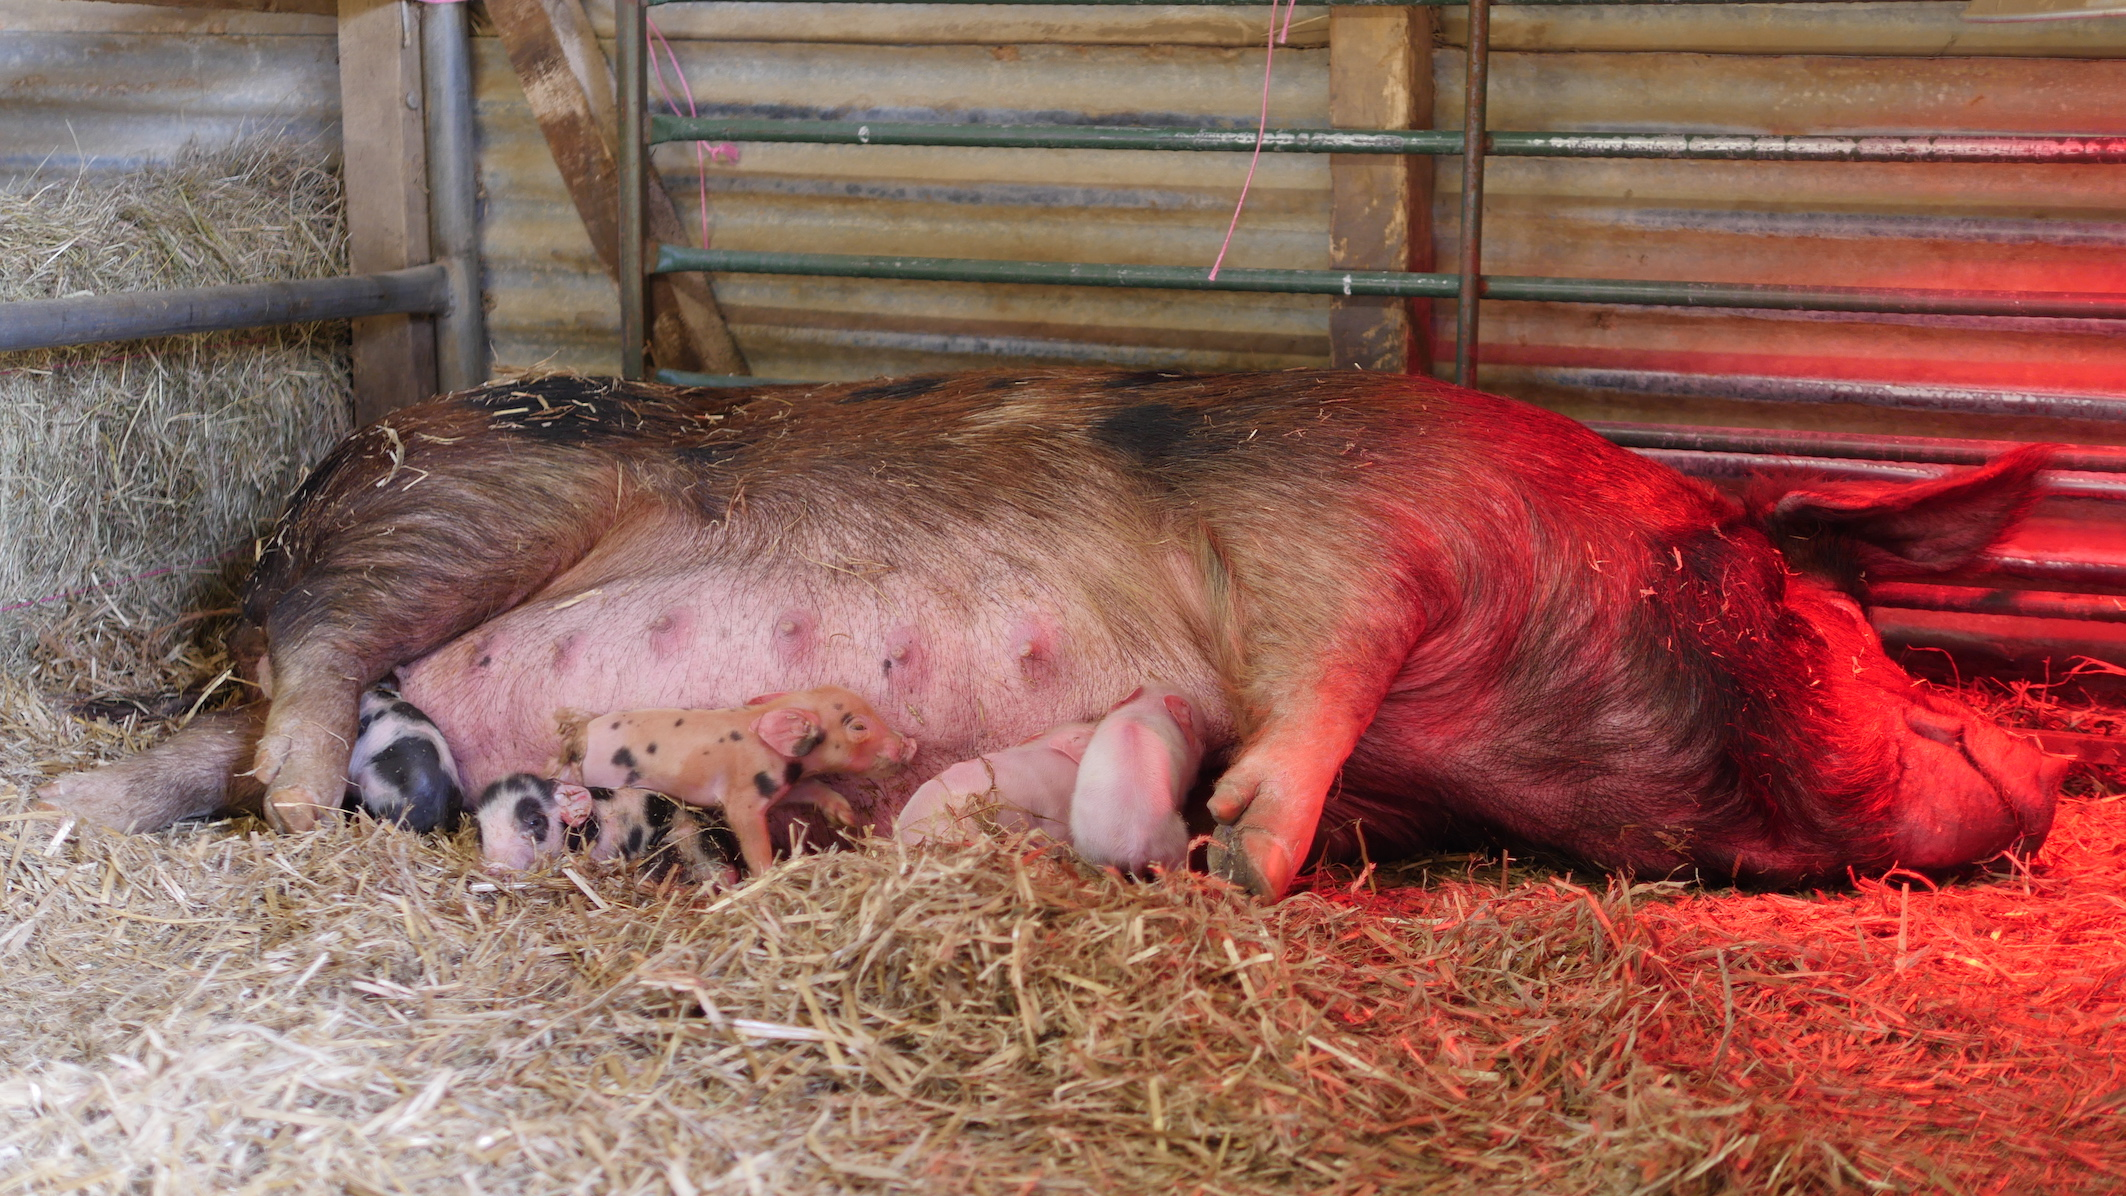 Little Ginge gives birth to 10 piglets